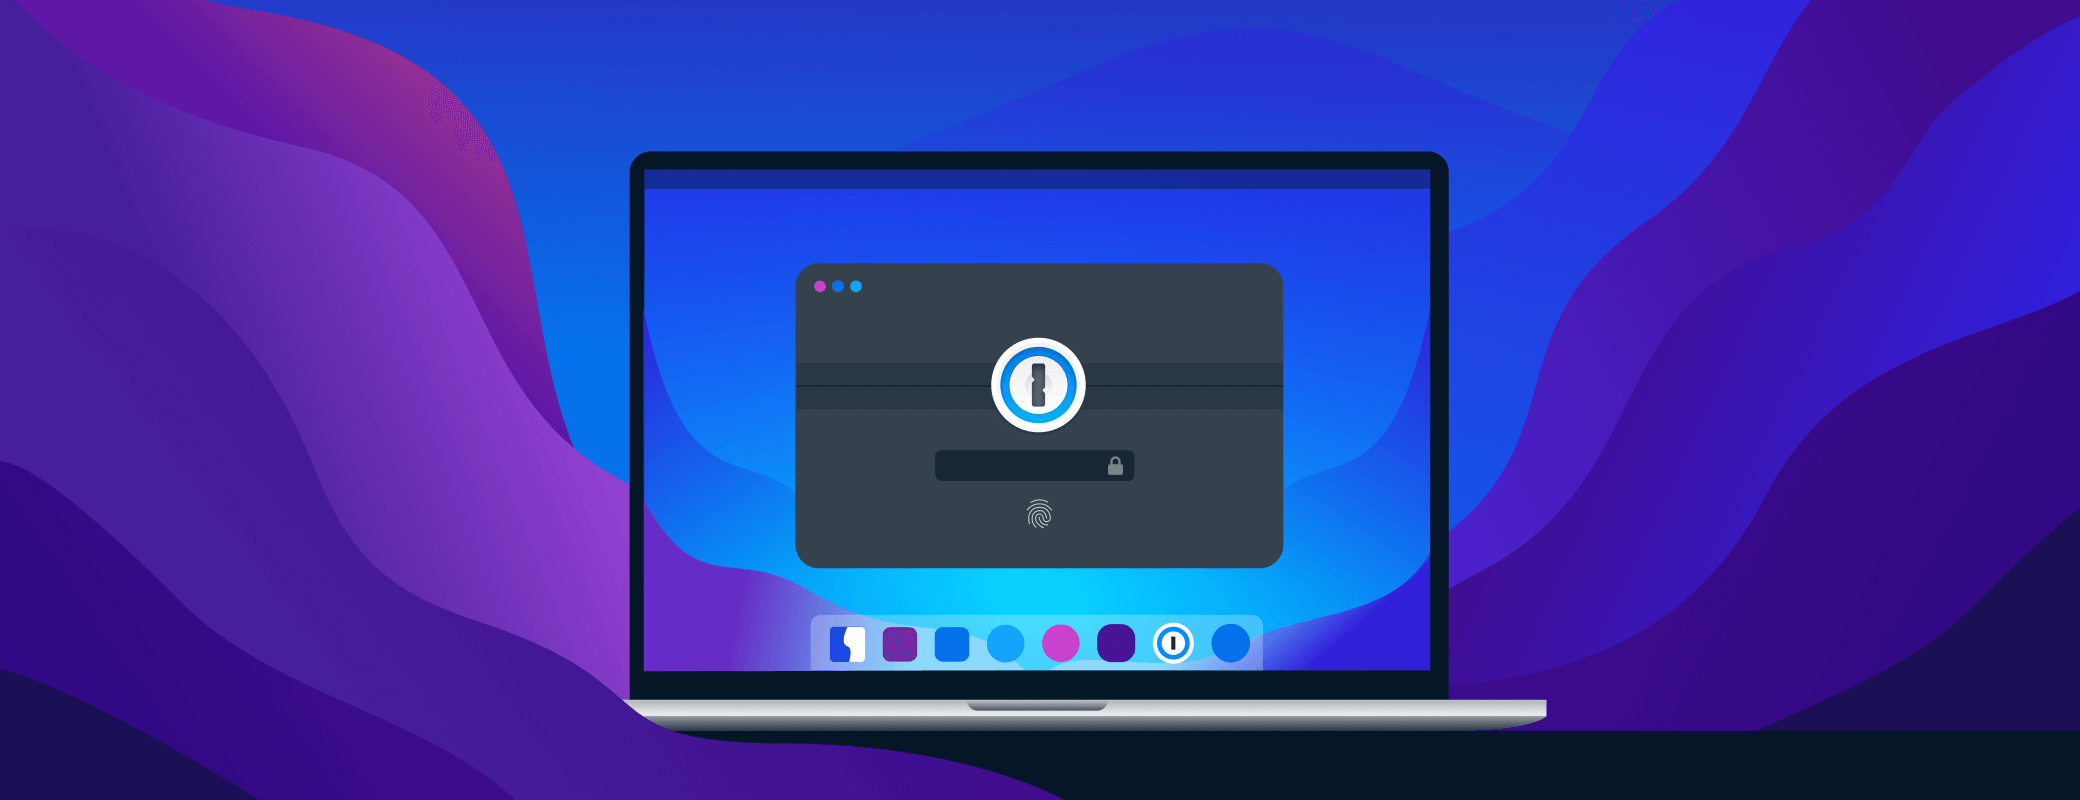 1Password is ready for macOS Monterey